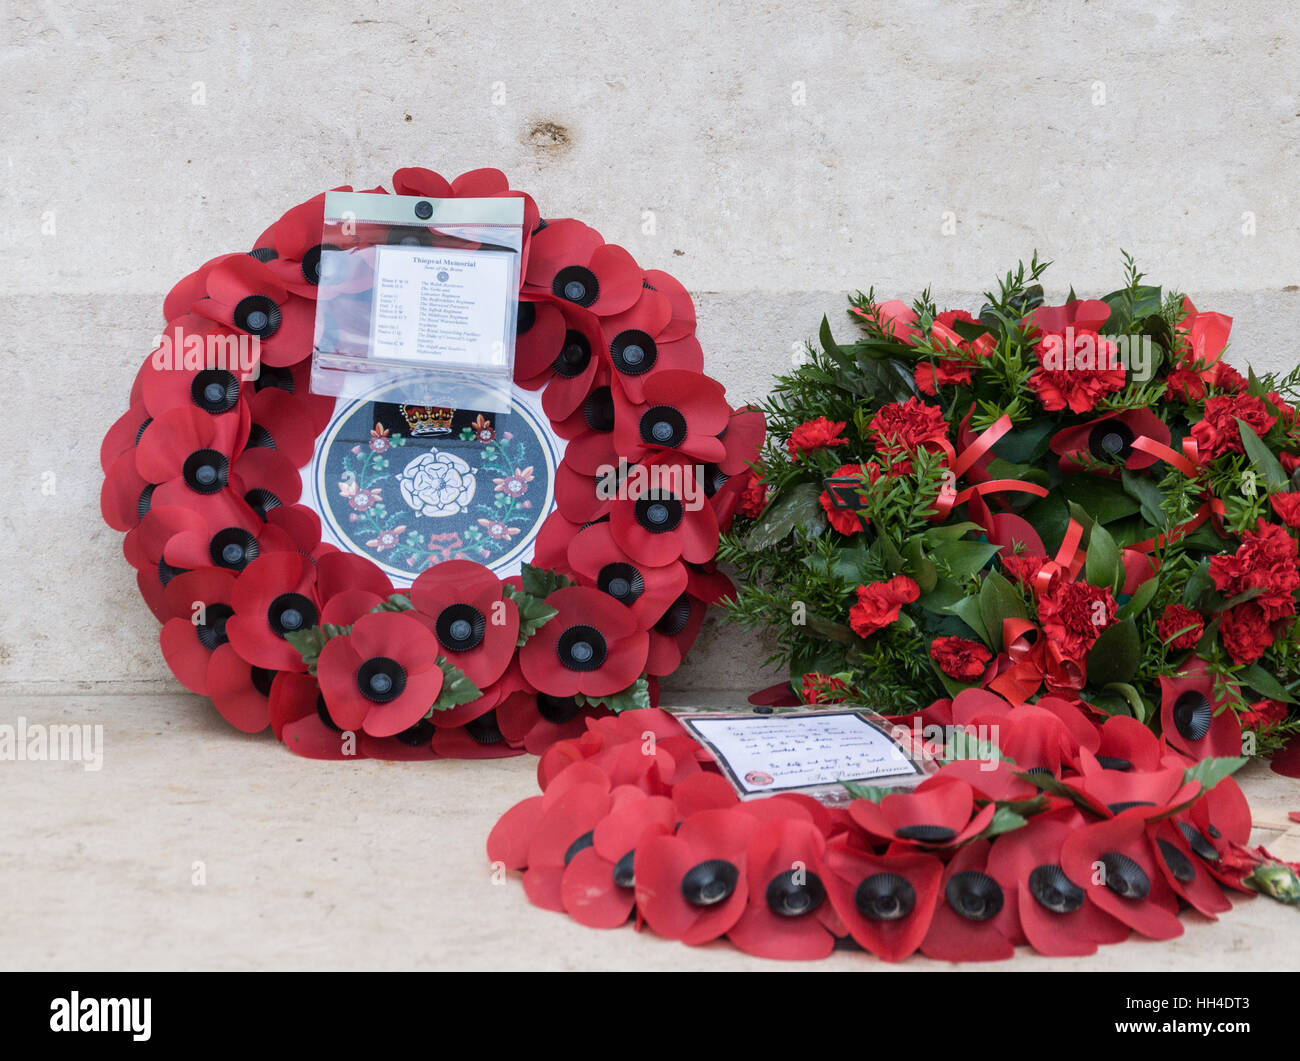 Remembrance. Poppy wreaths laid to remember the fallen at Thiepval Memorial - Stock Image